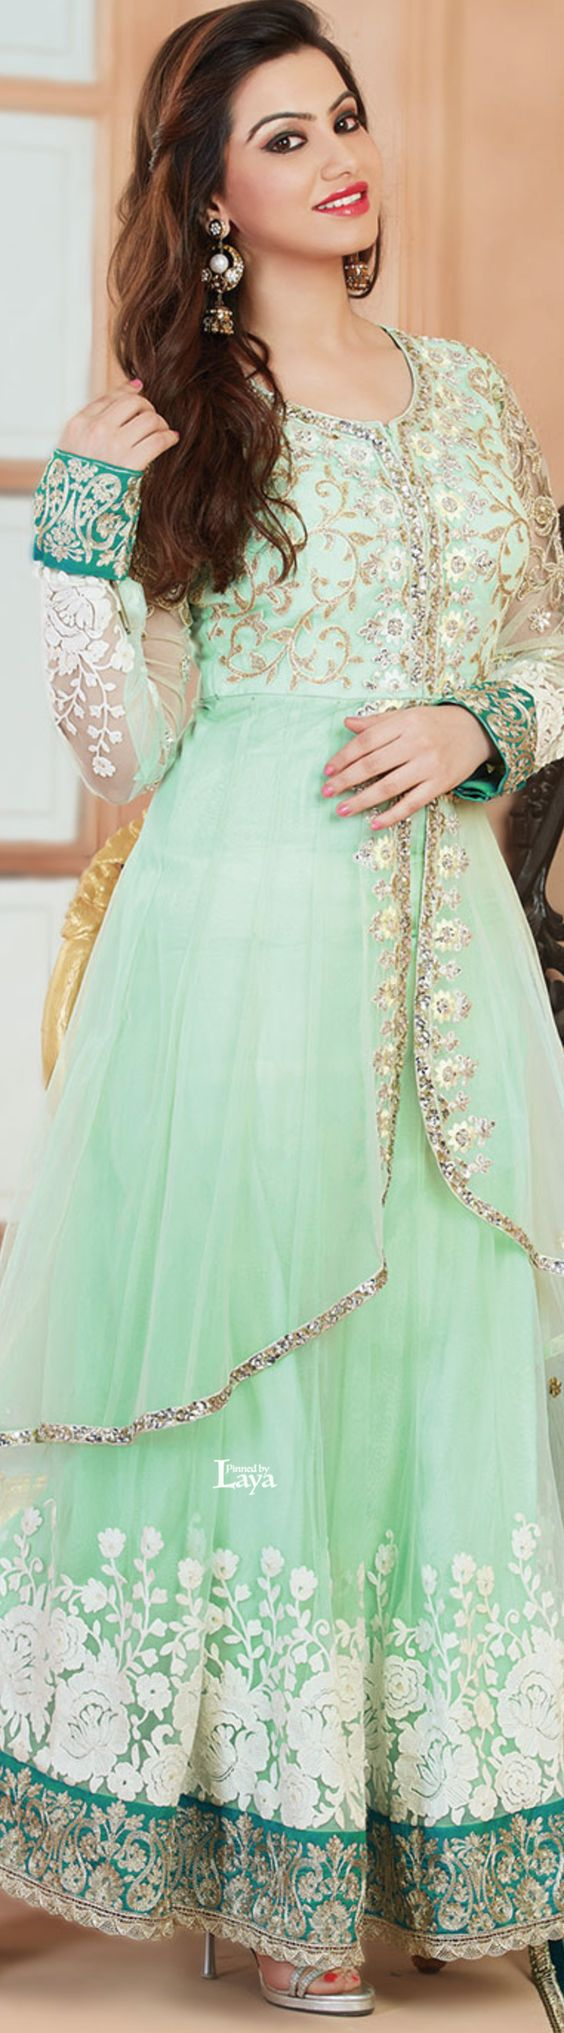 Latest Party Wear & Fancy Wedding Frock Designs Collection 2016-2017 (4)